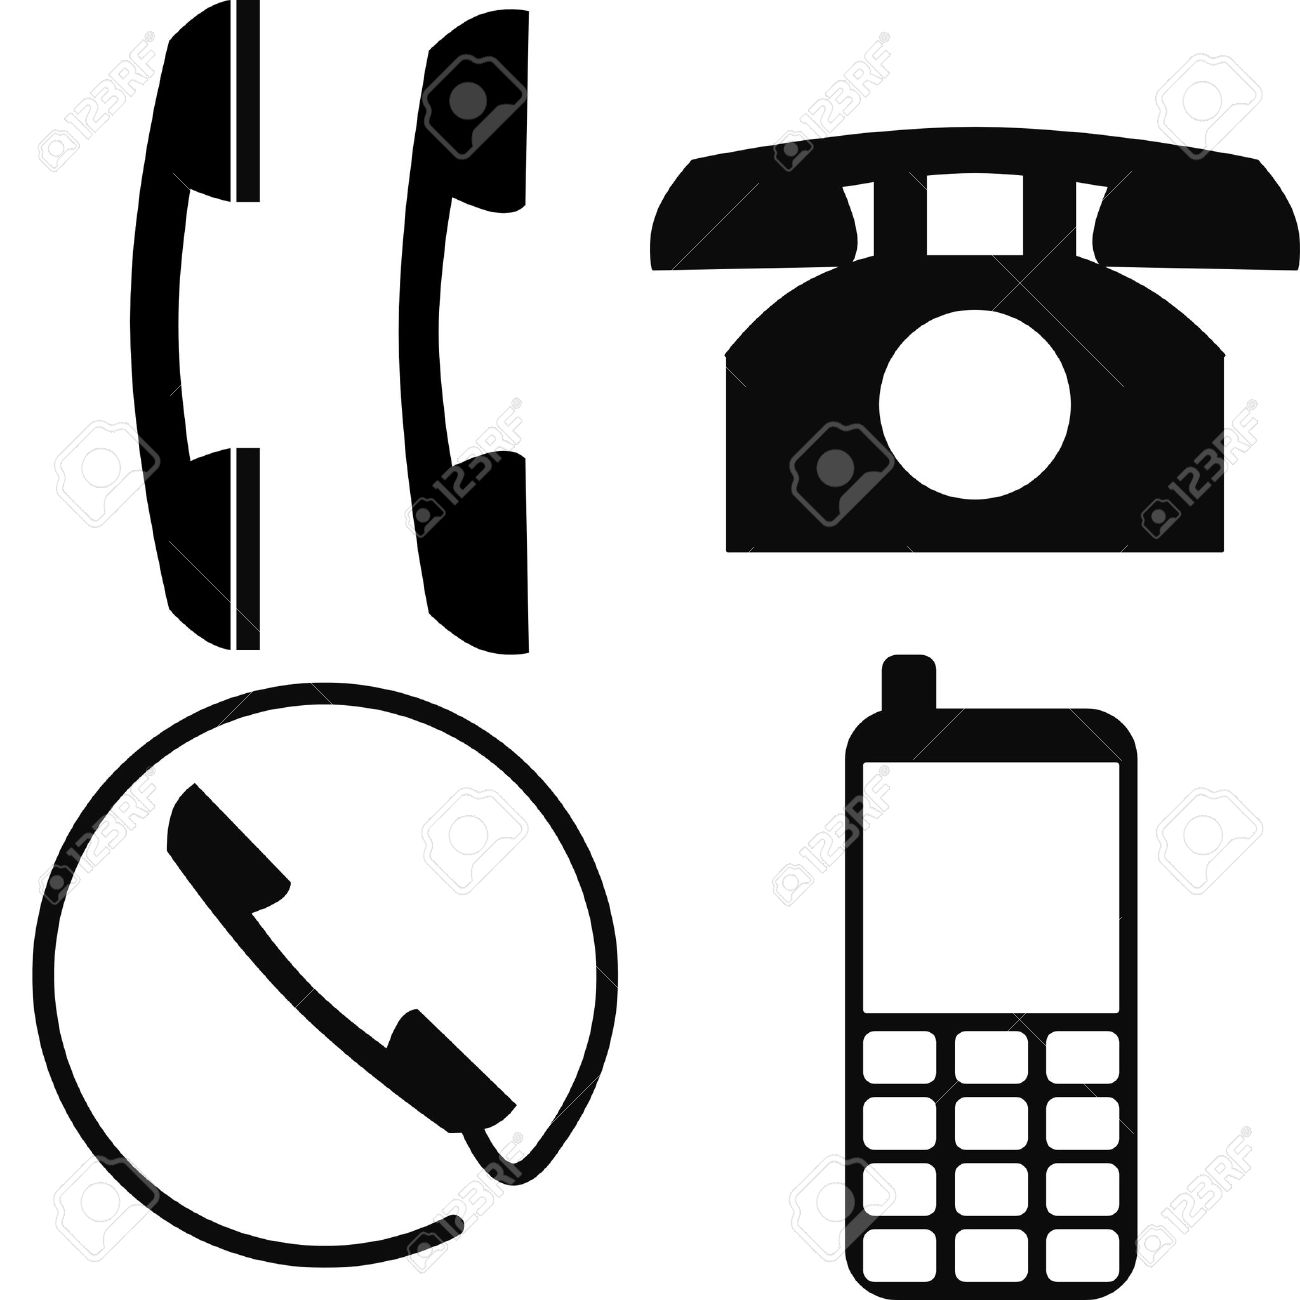 telephone/phone/mobile icons Stock Vector - 3315026